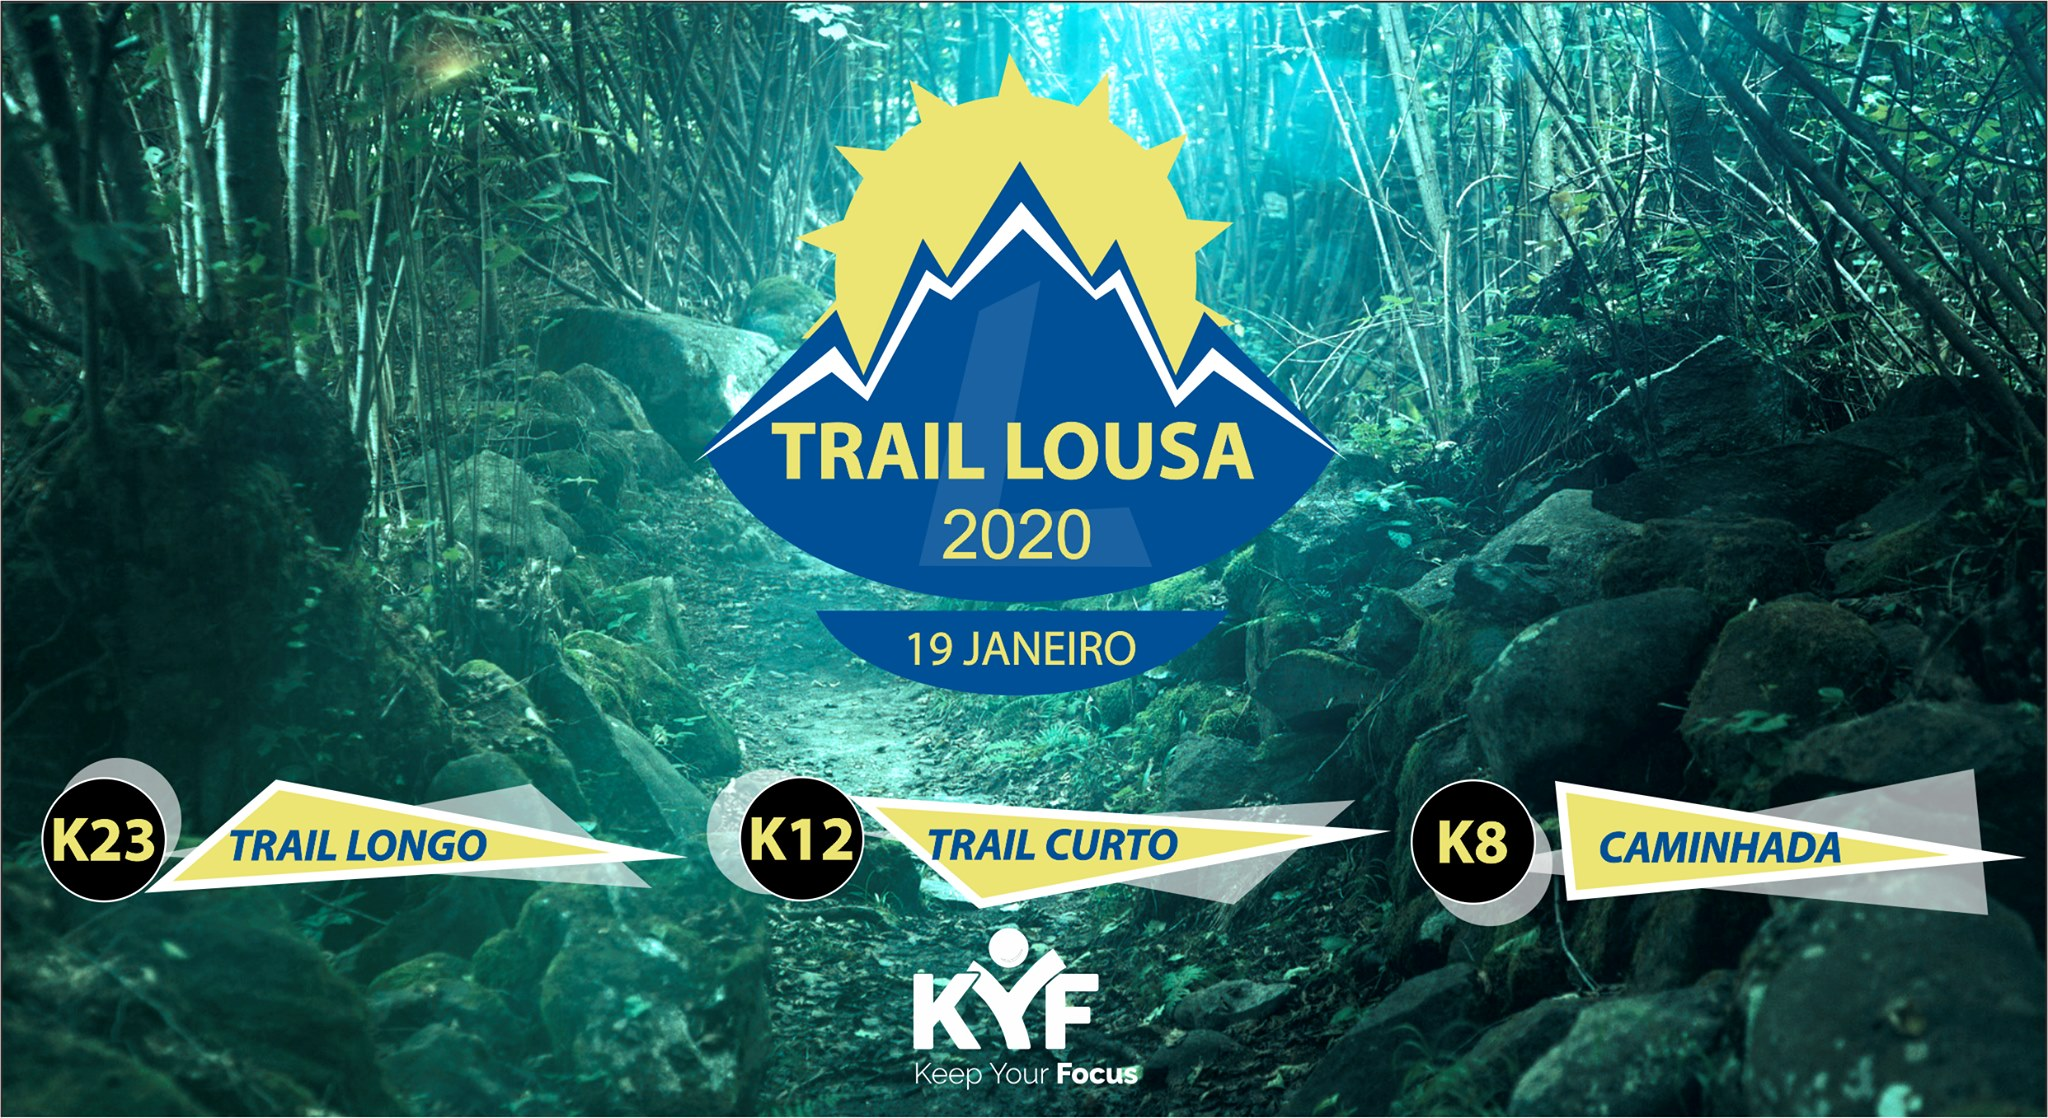 Trail Lousa 2020 - Eventos - TURRESEVENTS